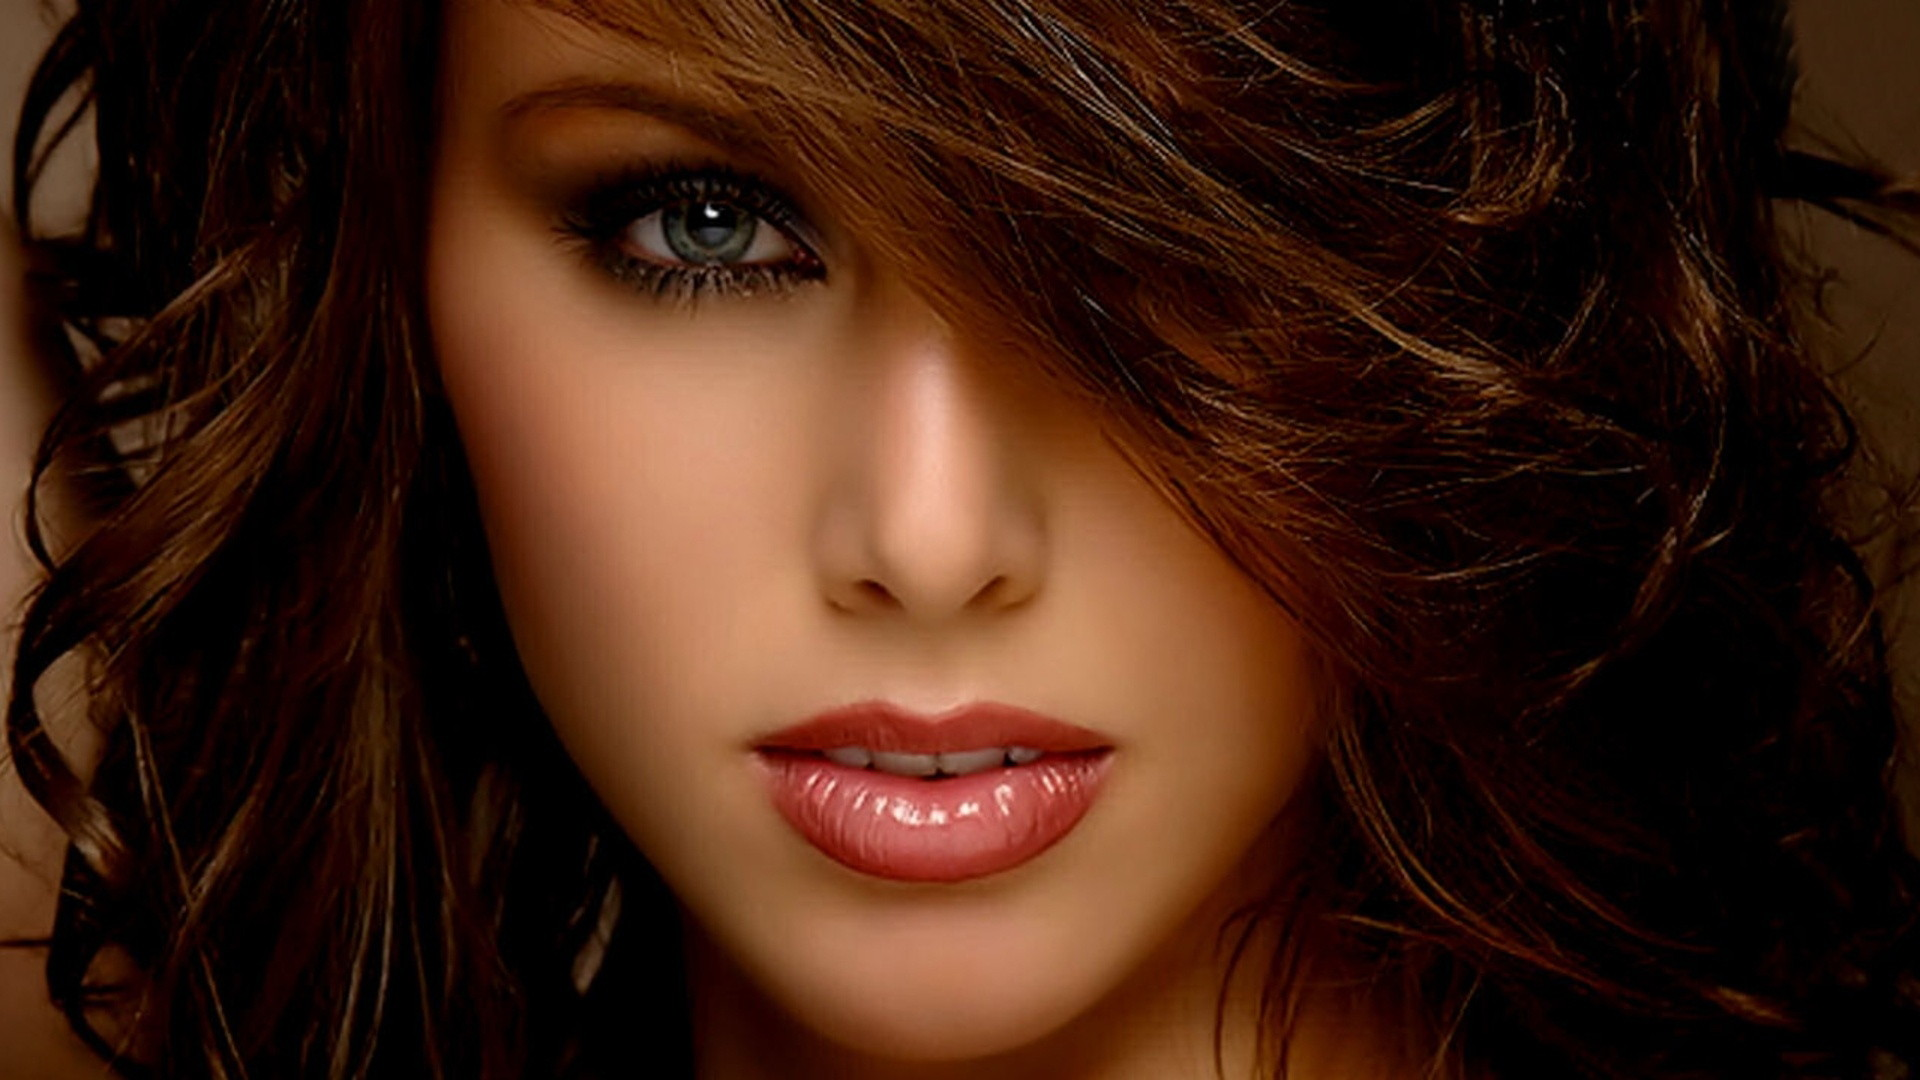 Beautiful Women Faces Wallpaper (54+ images) - photo#28